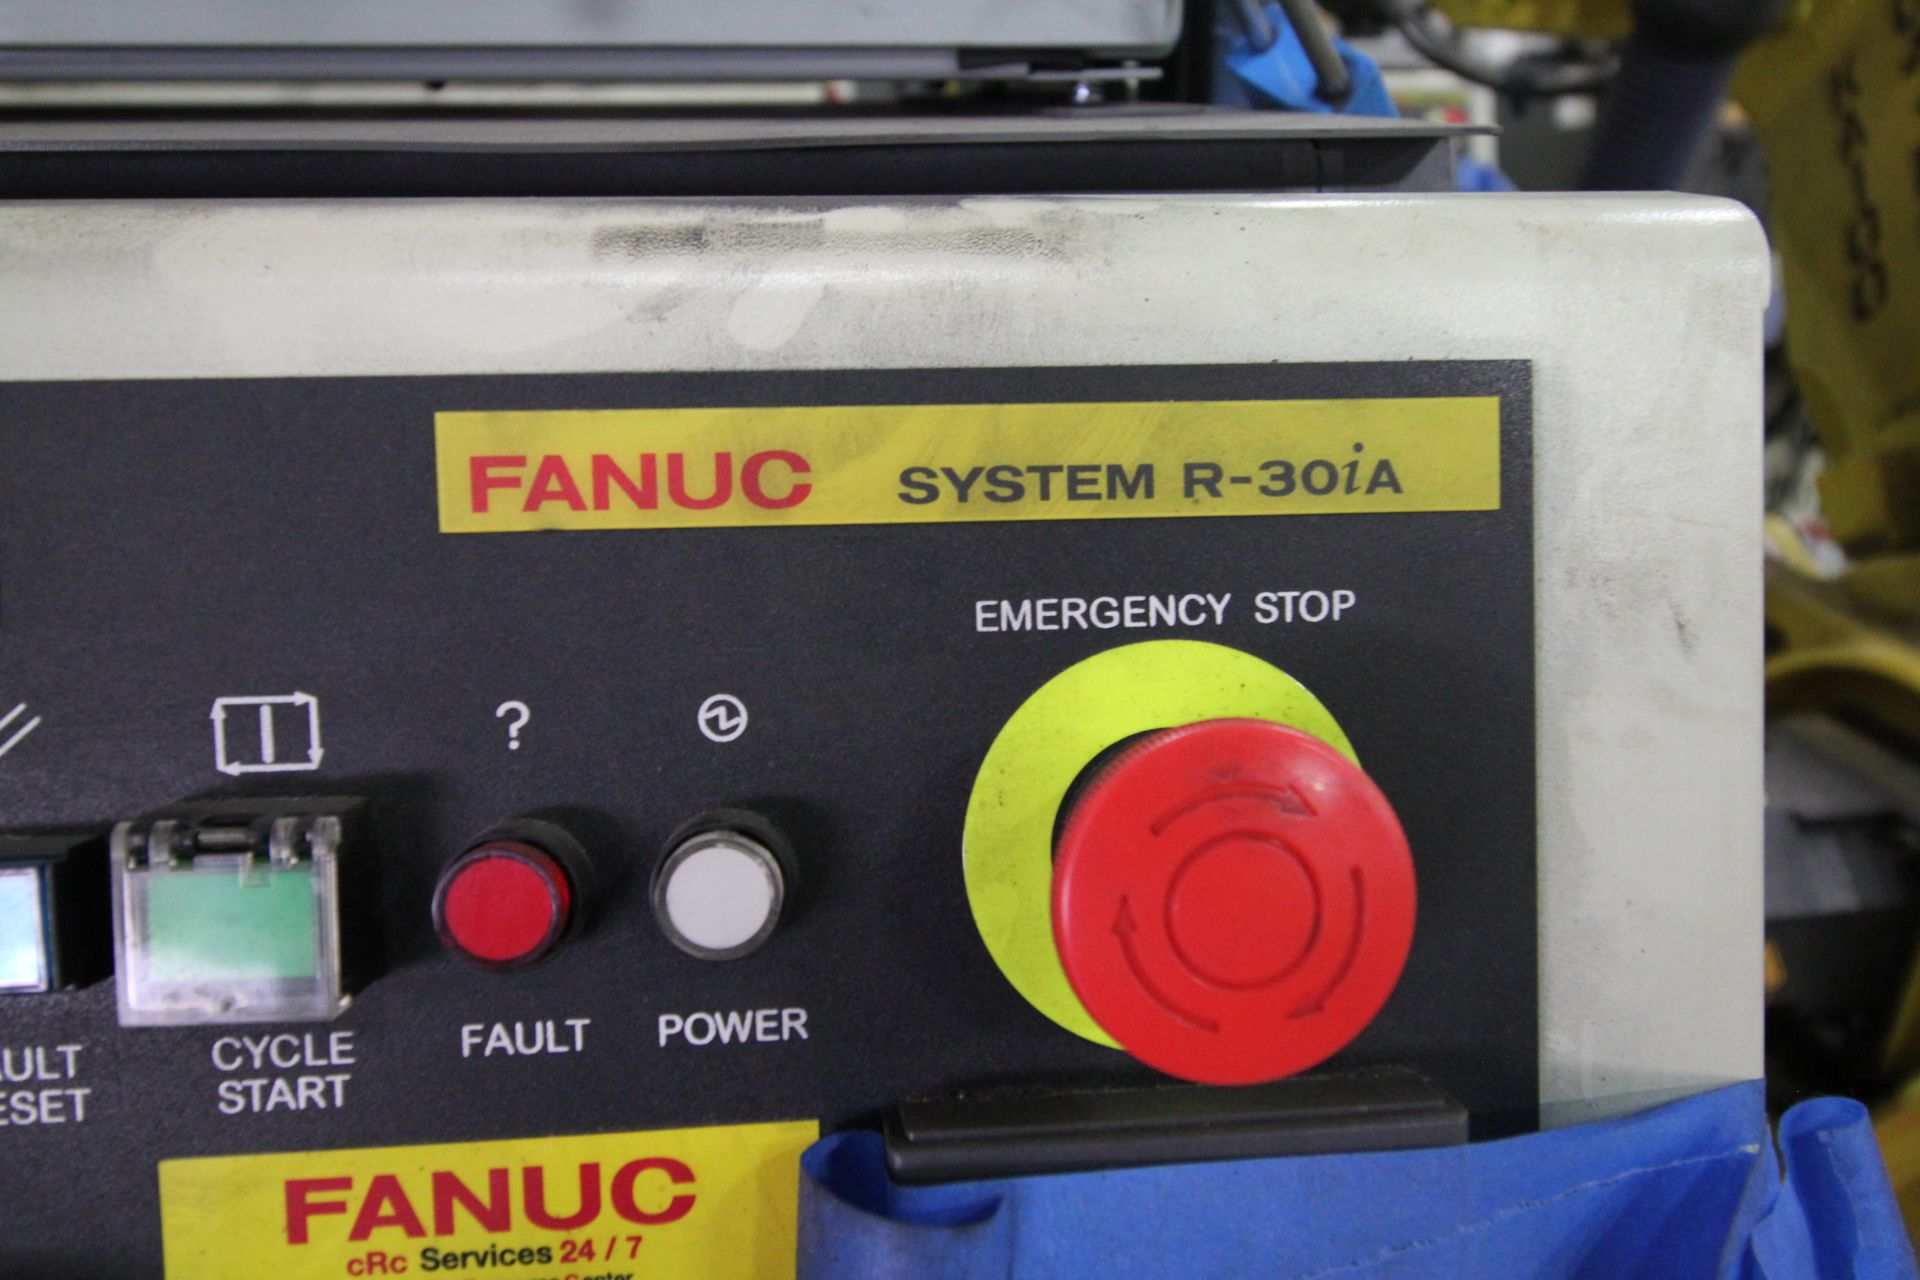 FANUC ROBOT R-2000iB/210F WITH R-30iA CONTROL, CABLES & TEACH PENDANT, SN 148715, YEAR 2014 - Image 5 of 8